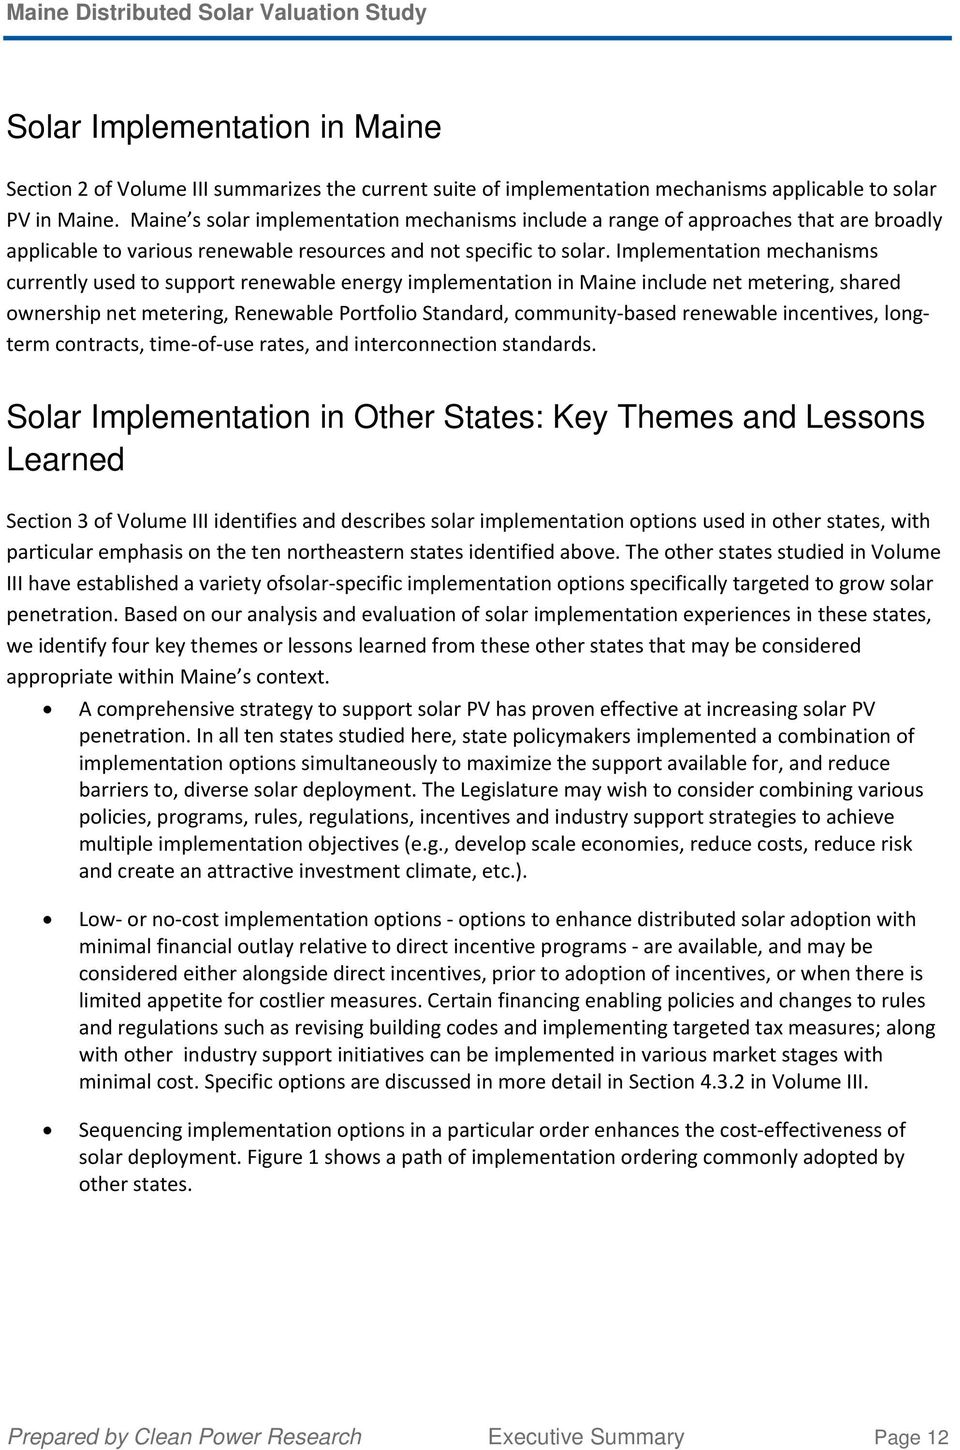 Implementation mechanisms currently used to support renewable energy implementation in Maine include net metering, shared ownership net metering, Renewable Portfolio Standard, community based